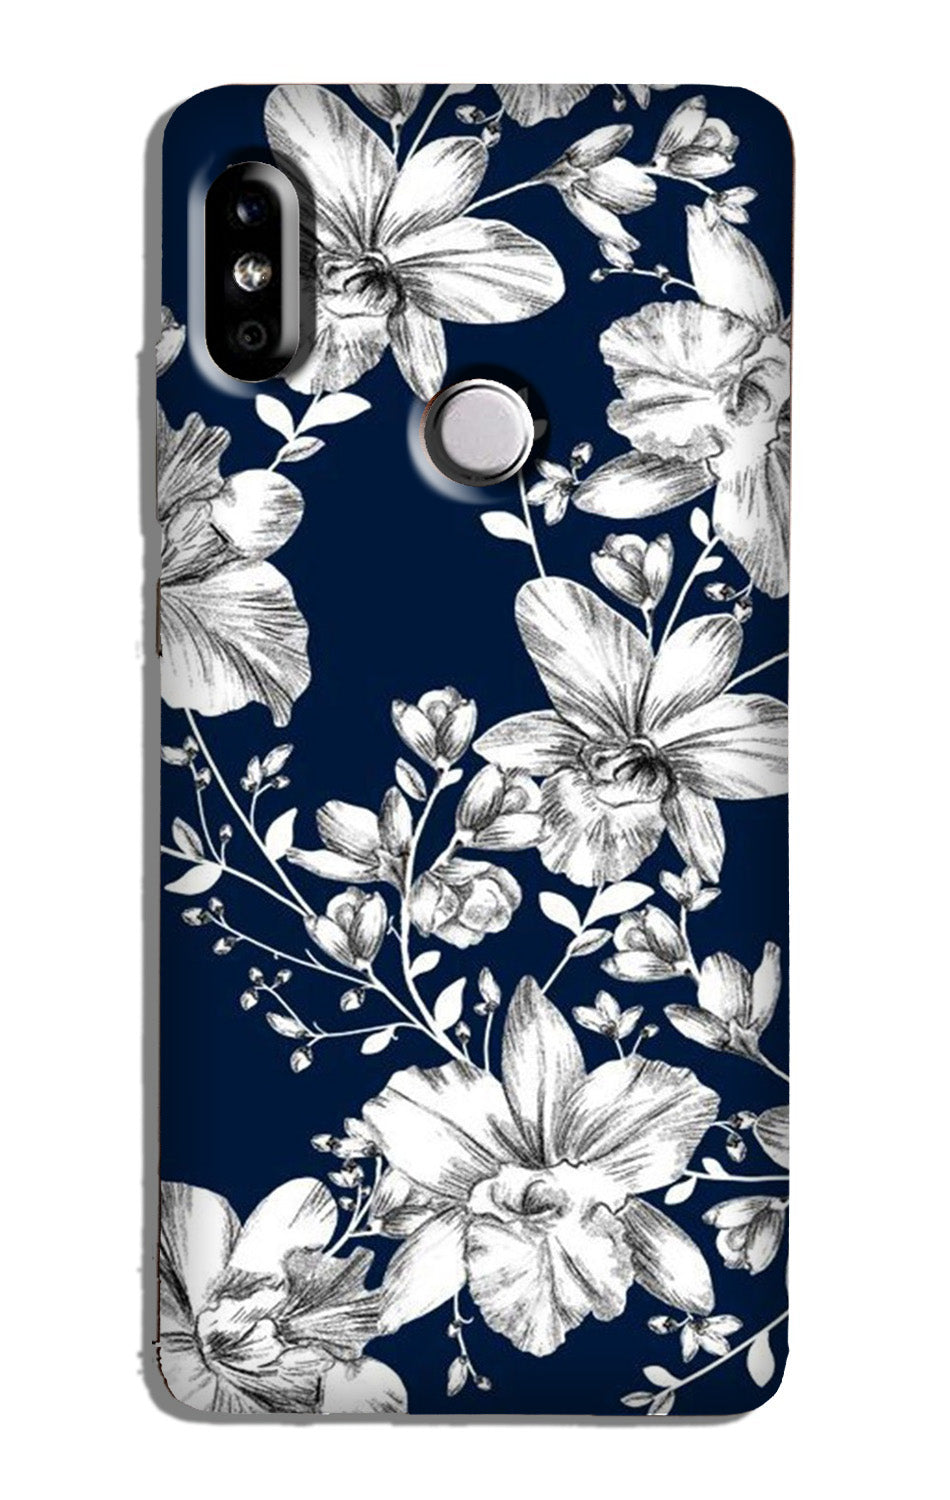 White flowers Blue Background Case for Redmi 6 Pro